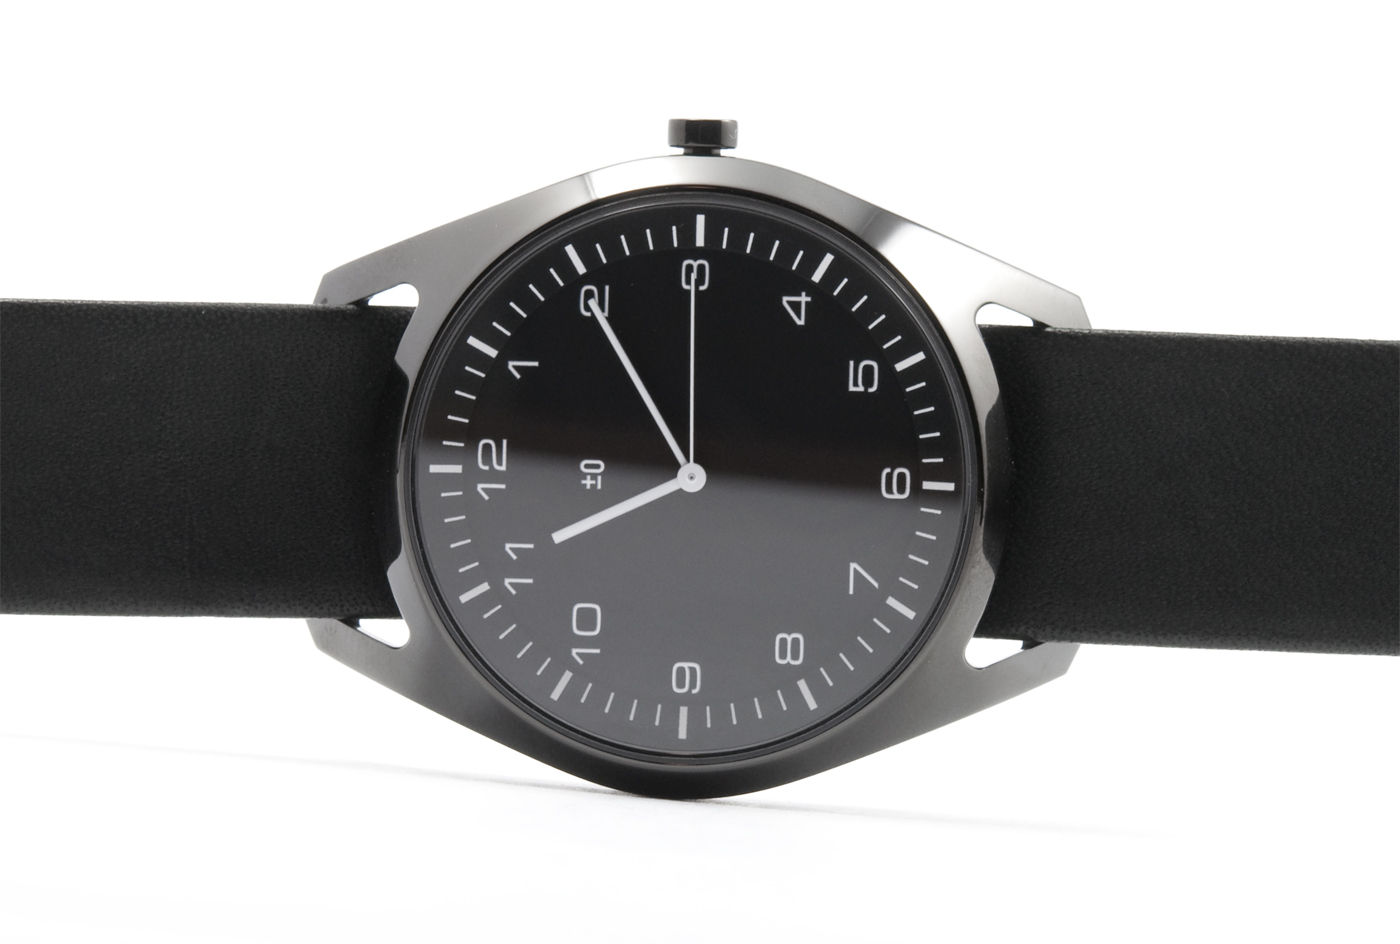 wrist-watch-black-leather-01